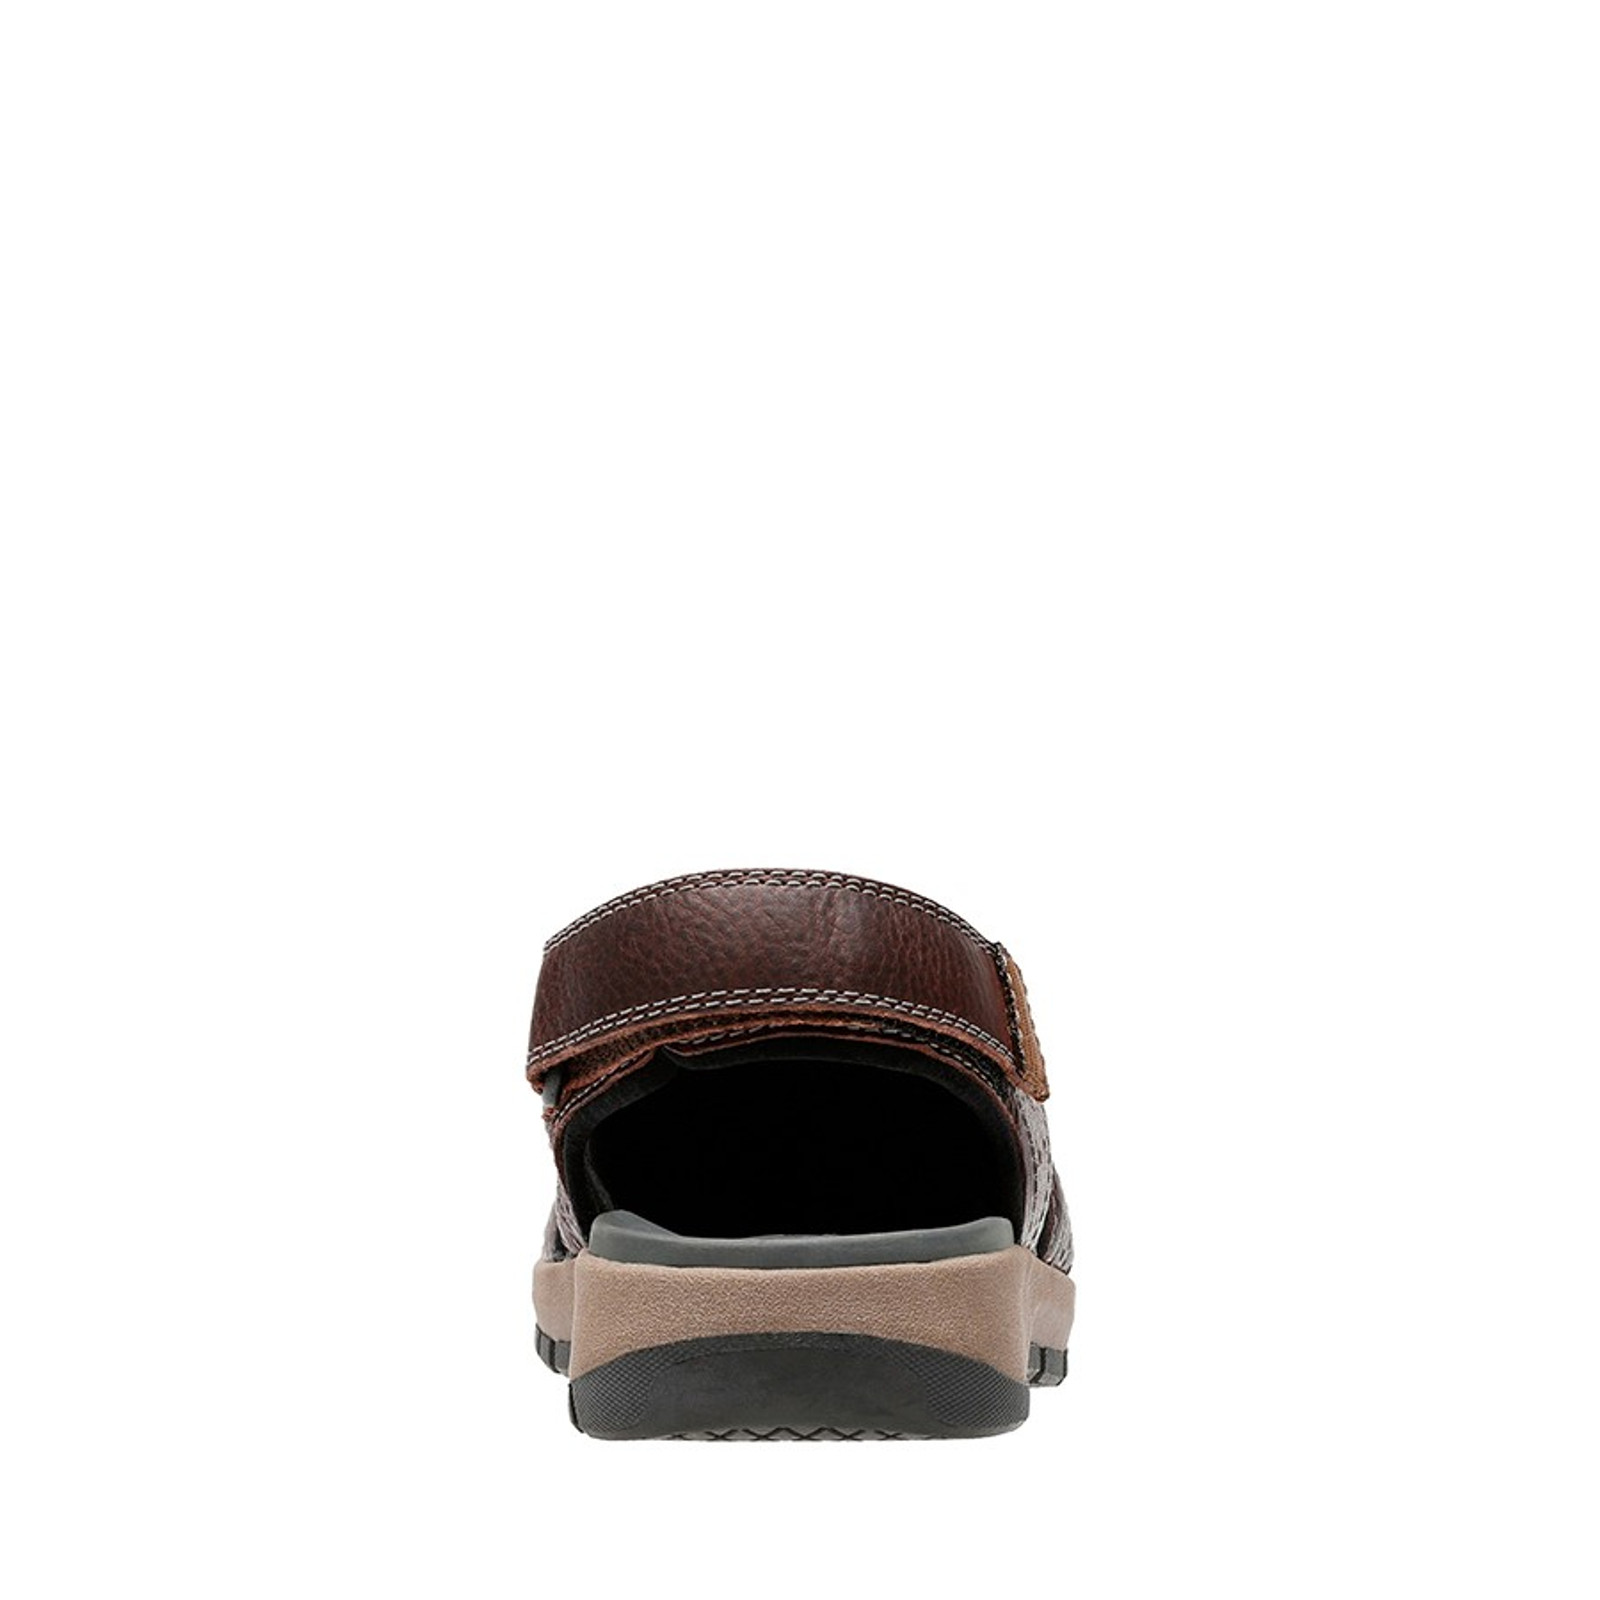 Clarks Mens BRIXBY COVE Dark Brown Leather